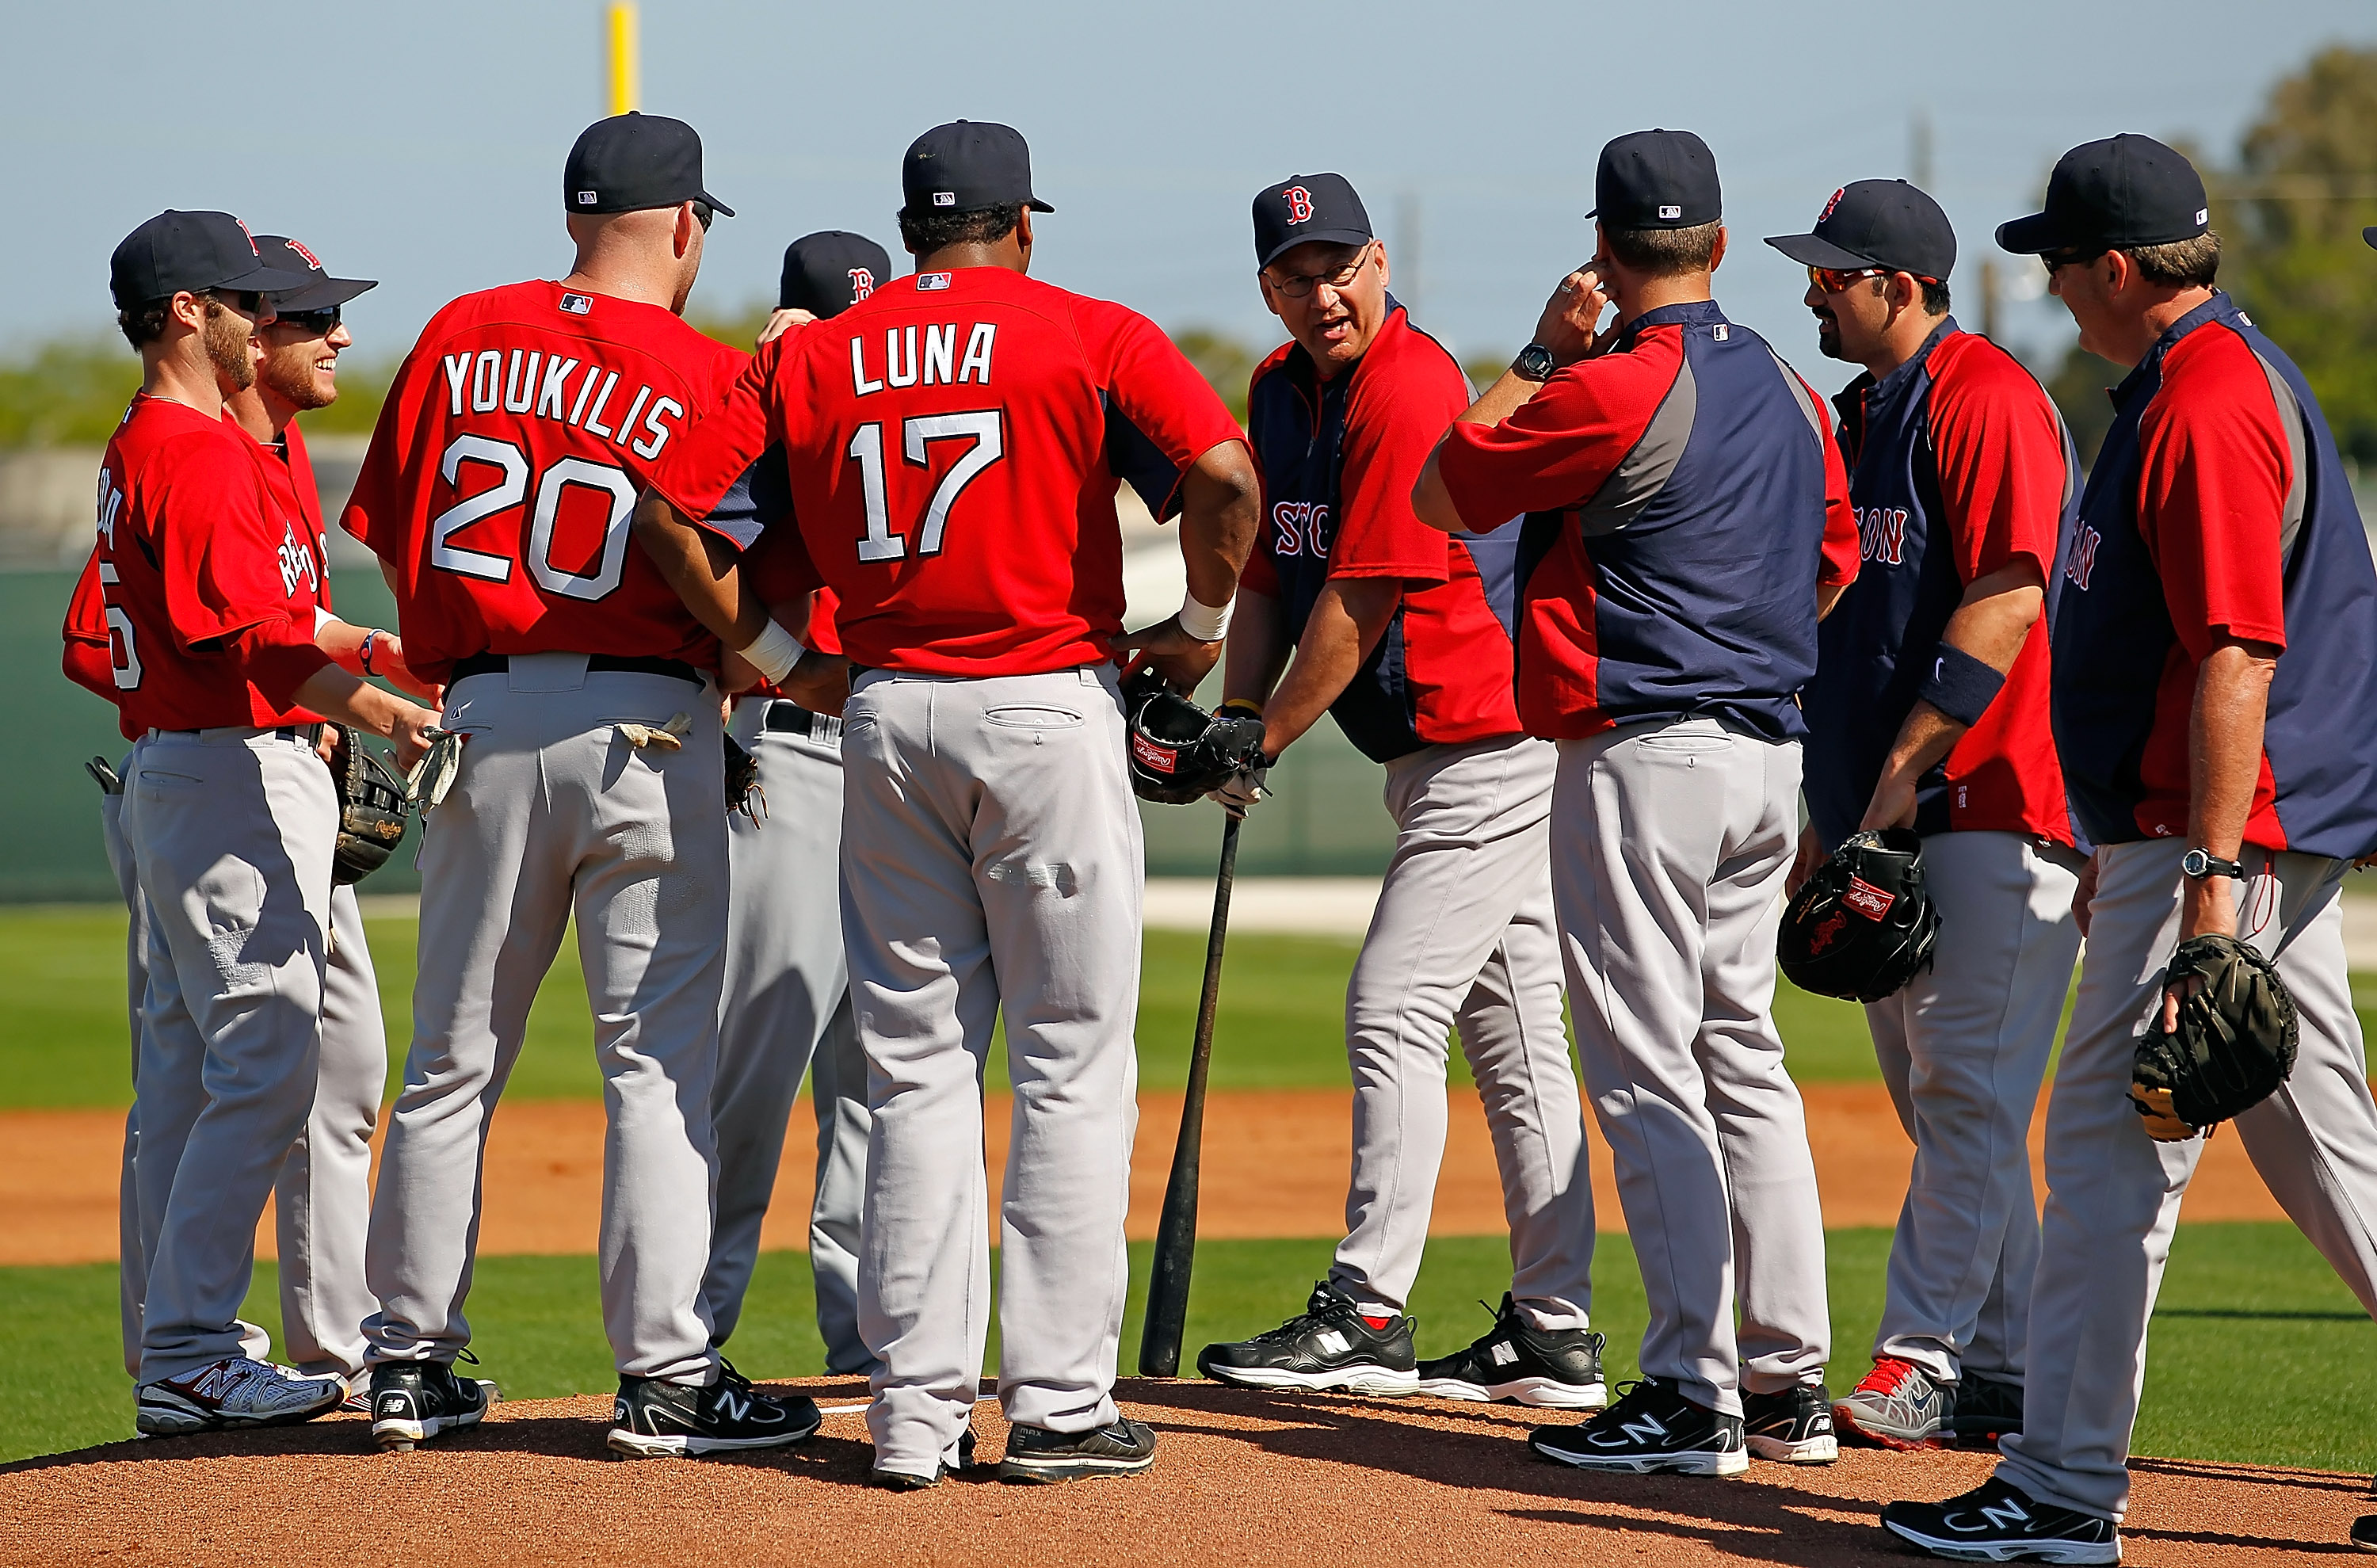 Tito will have plenty of new faces to look at this year.